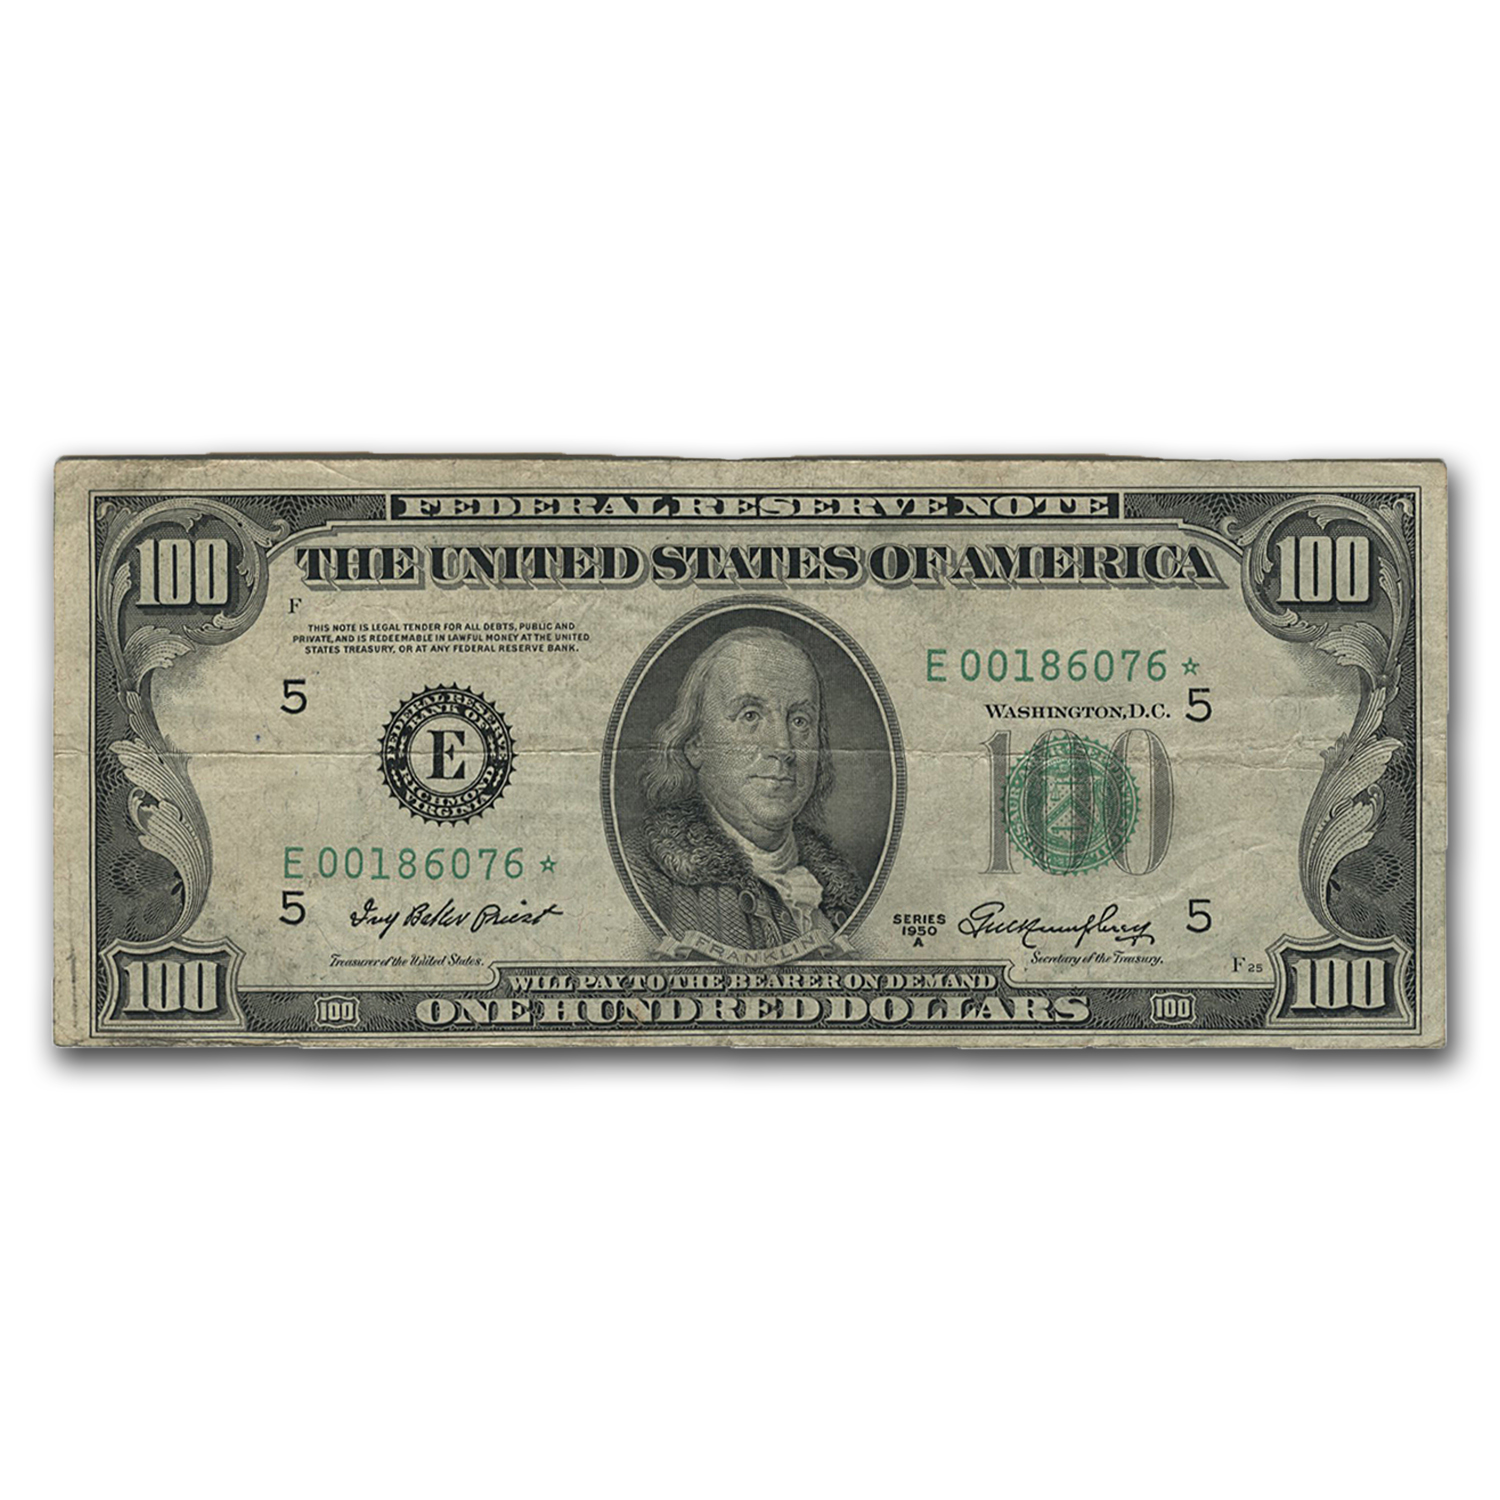 1950-A* (E-Richmond) $100 FRN VF (Star Note)